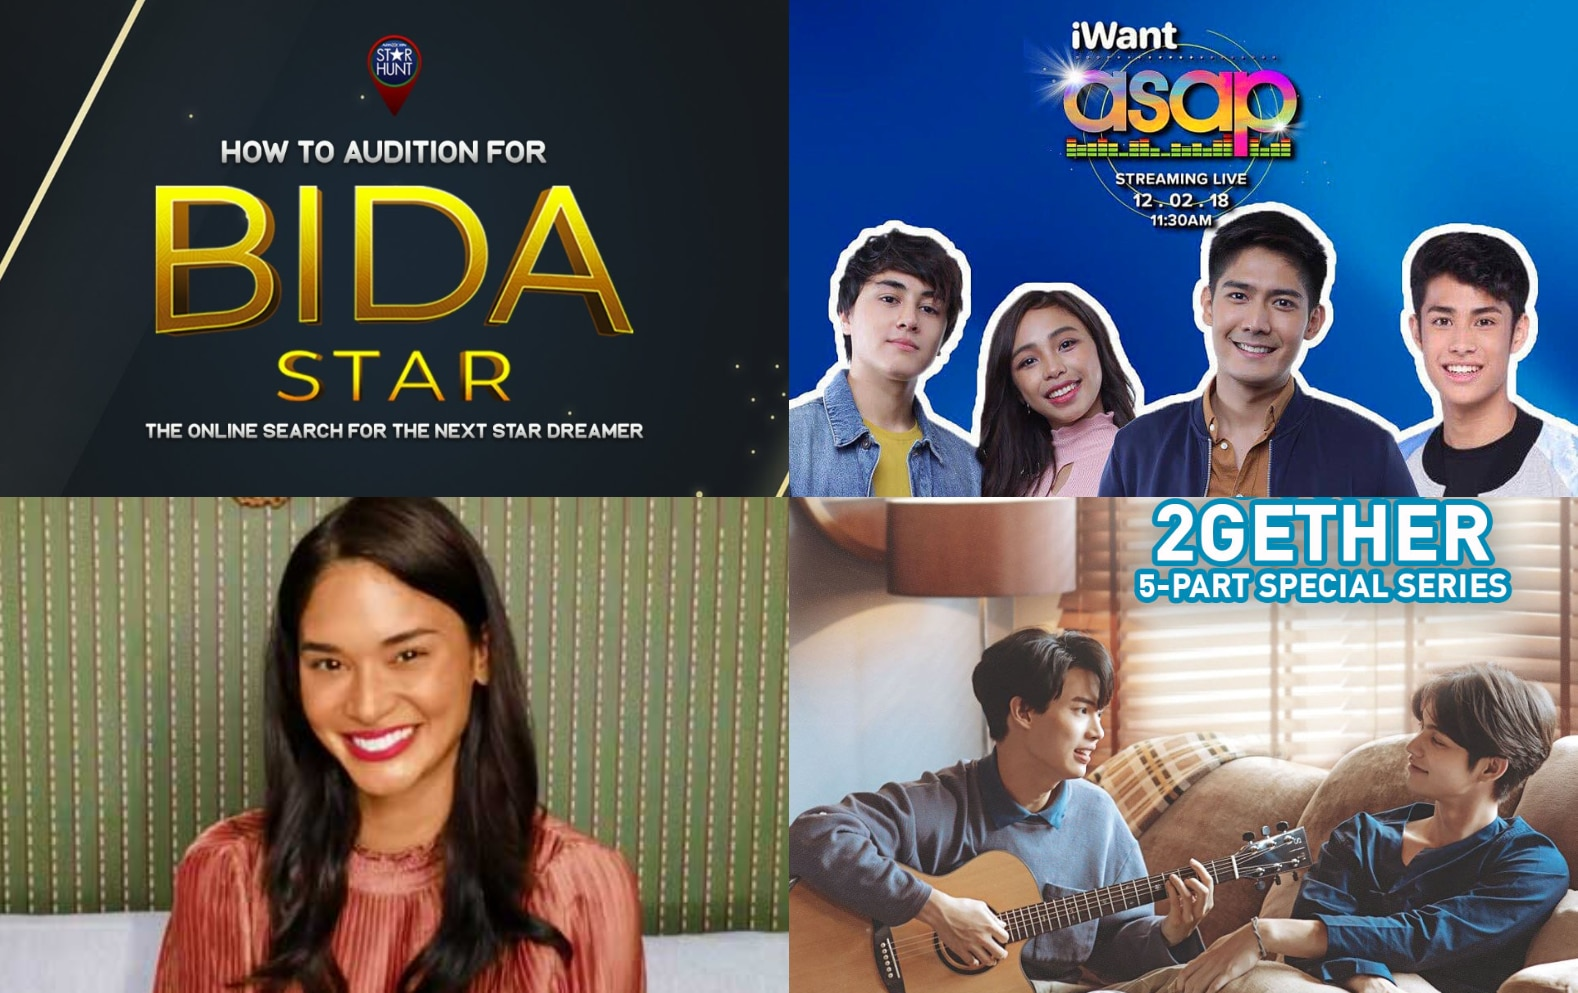 Keep moving forward with ABS-CBN's digital shows this August